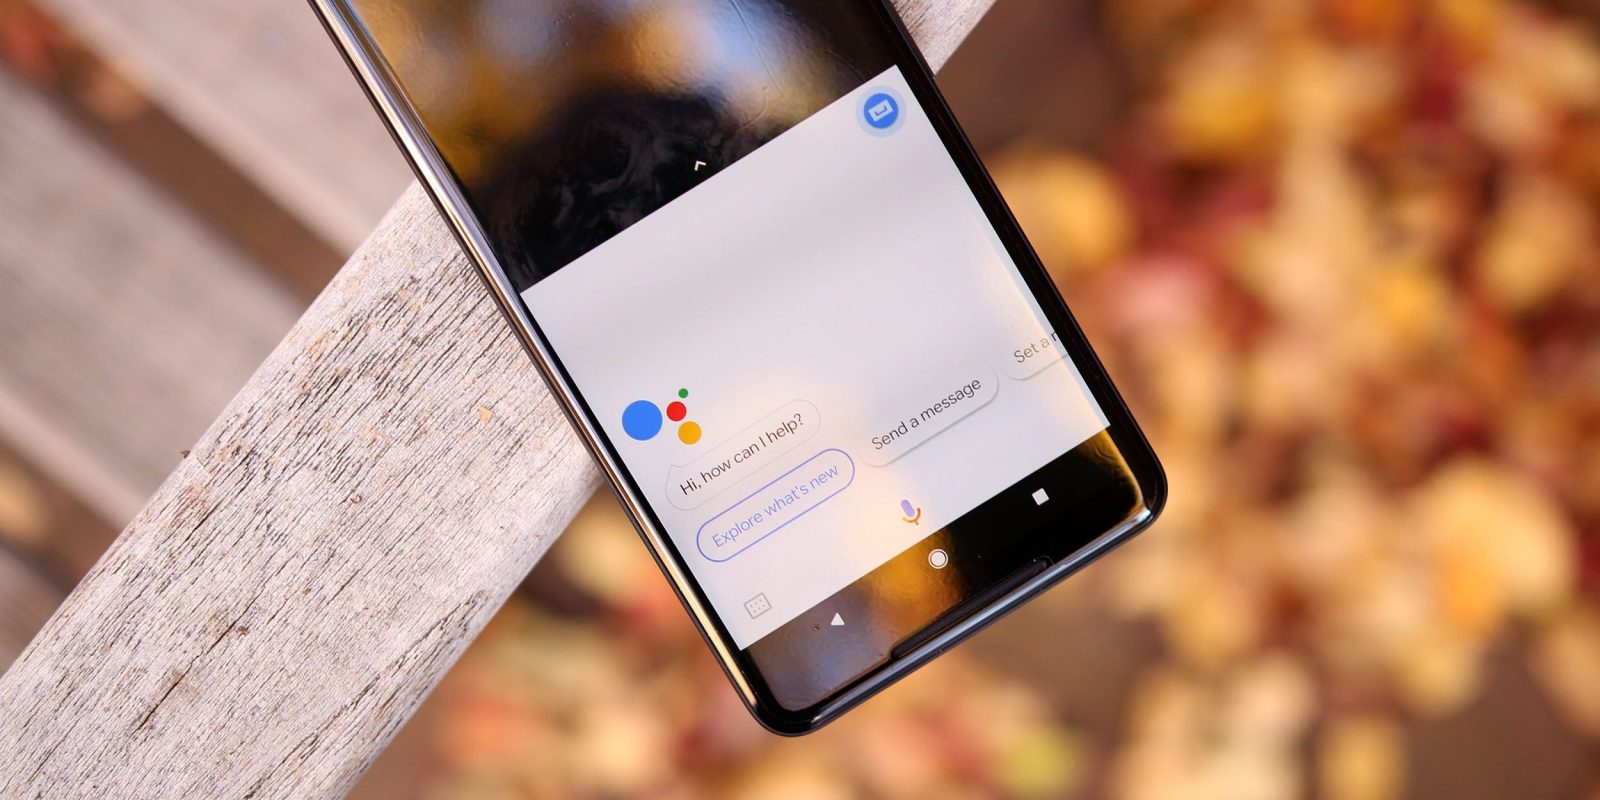 QnA VBage Google Assistant on Android regressing to previous, non-Smart Display-inspired design